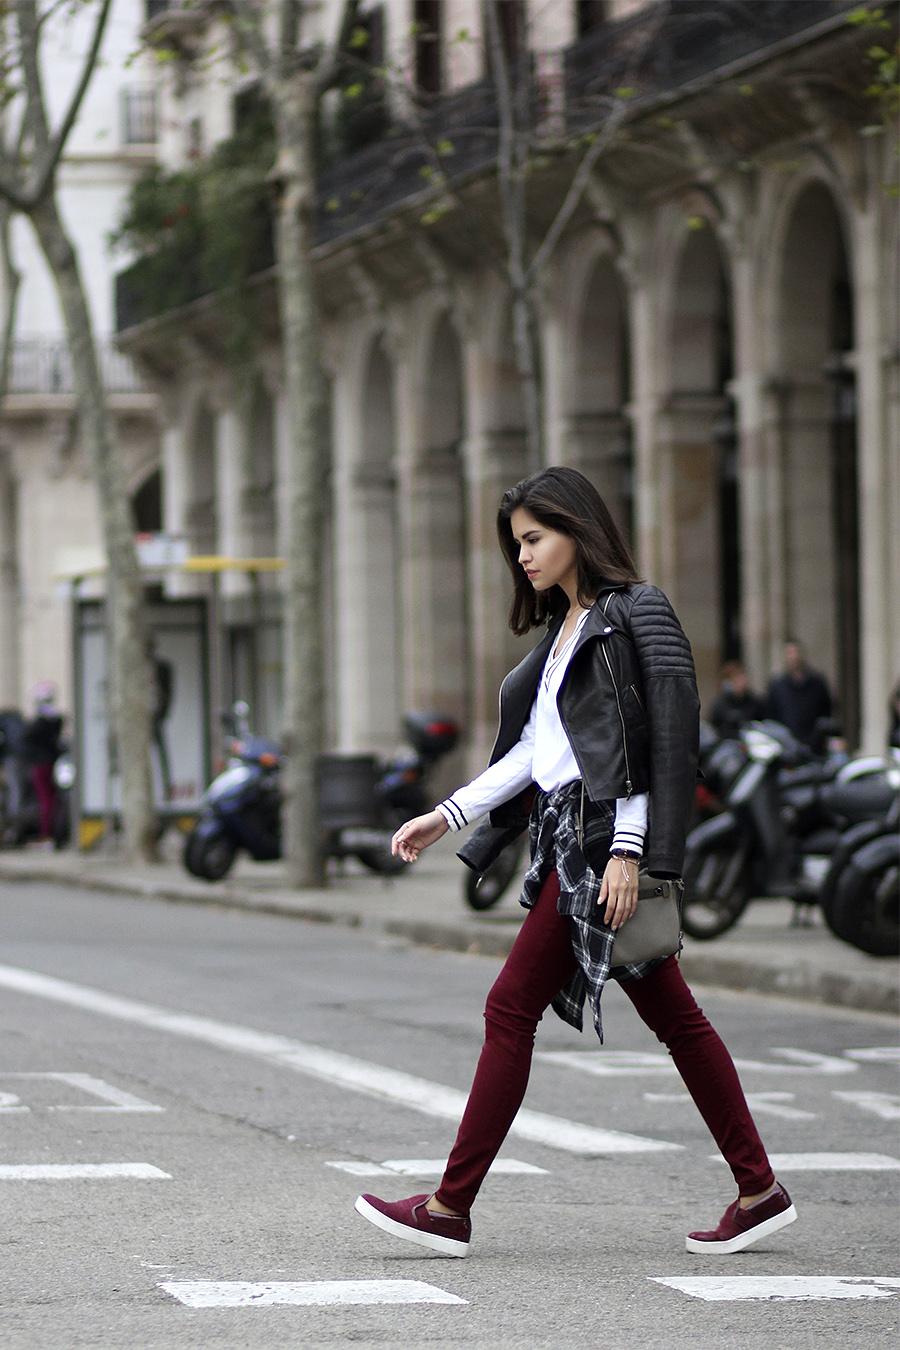 c0b026d0 Burgundy Fashion Trend: Adriana Gastélum is wearing burgundy jeans from Zara  and the matching slip